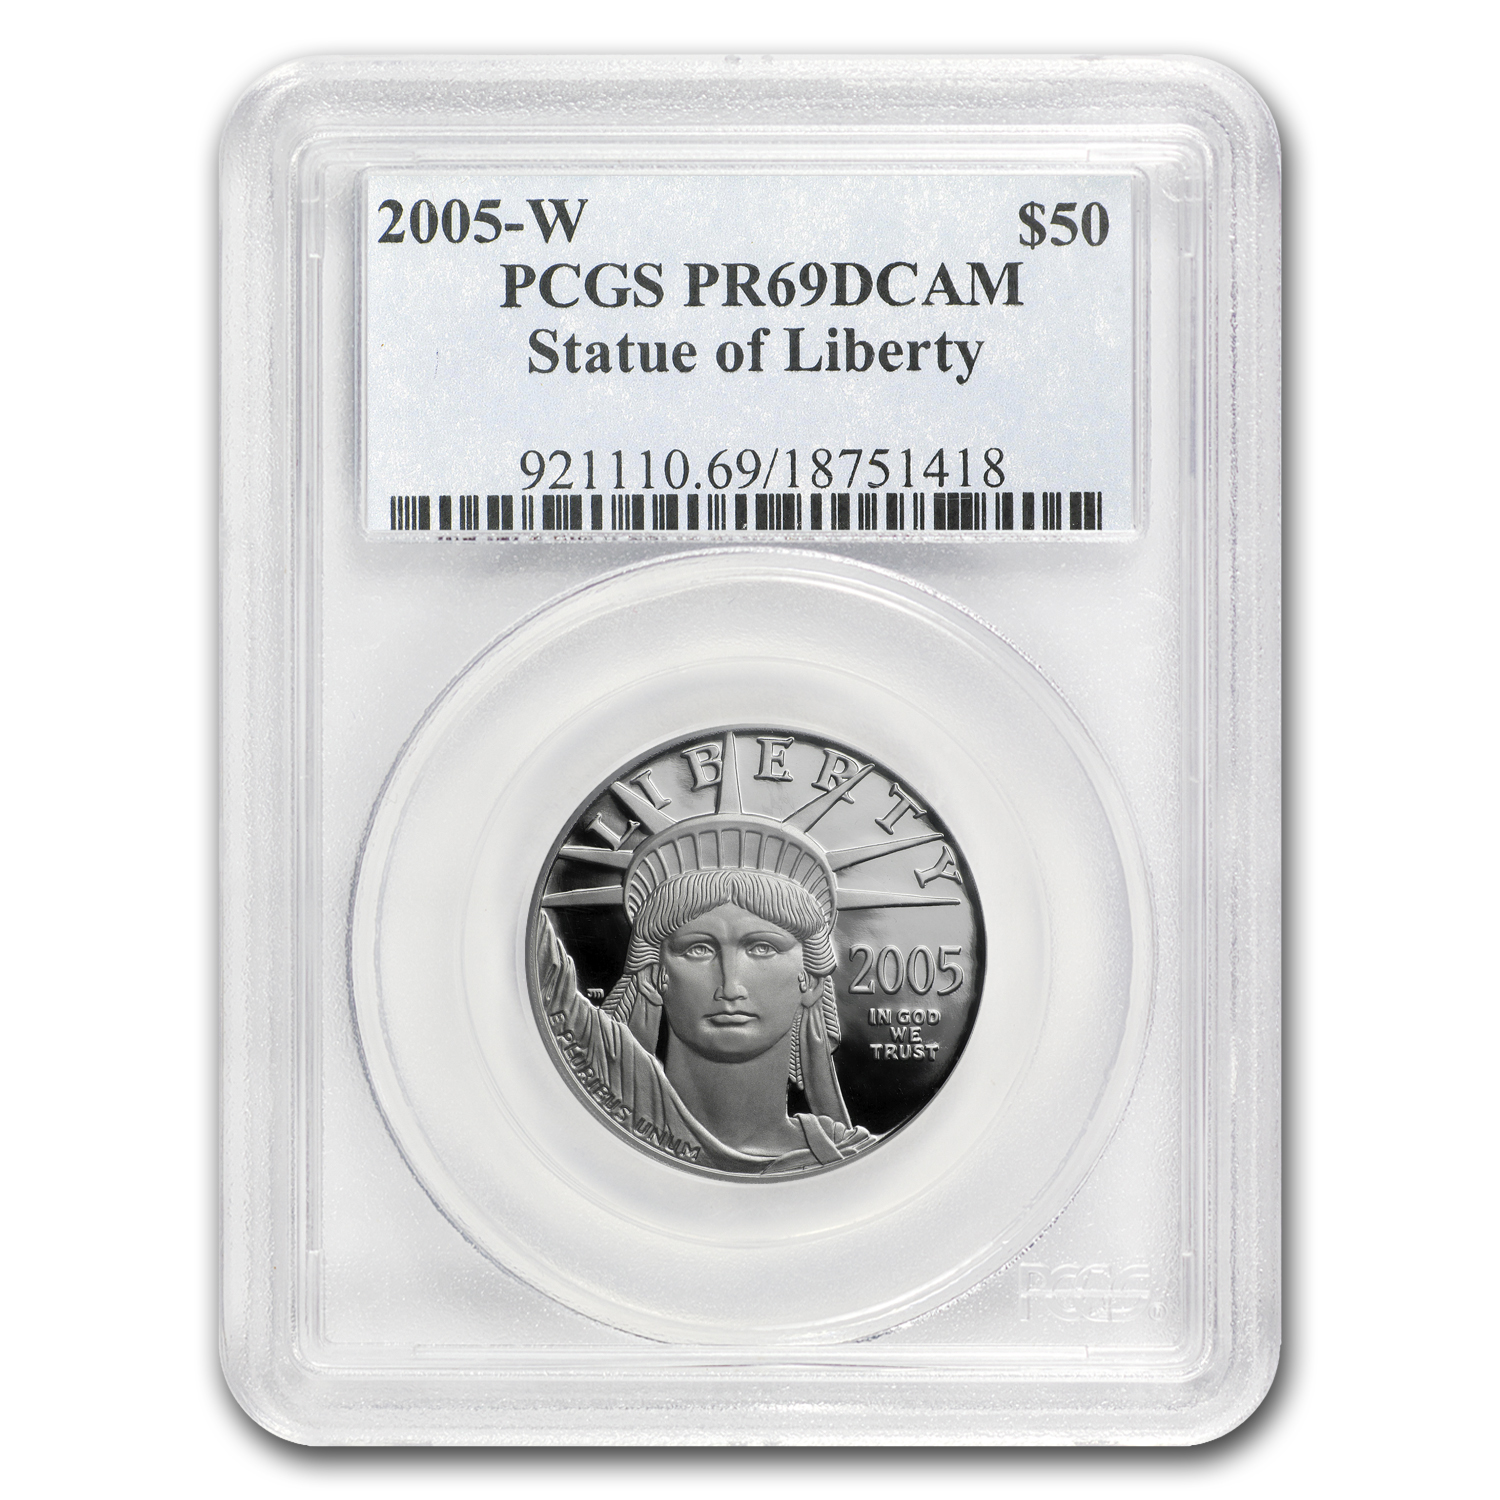 2005-W 1/2 oz Proof Platinum American Eagle PR-69 PCGS